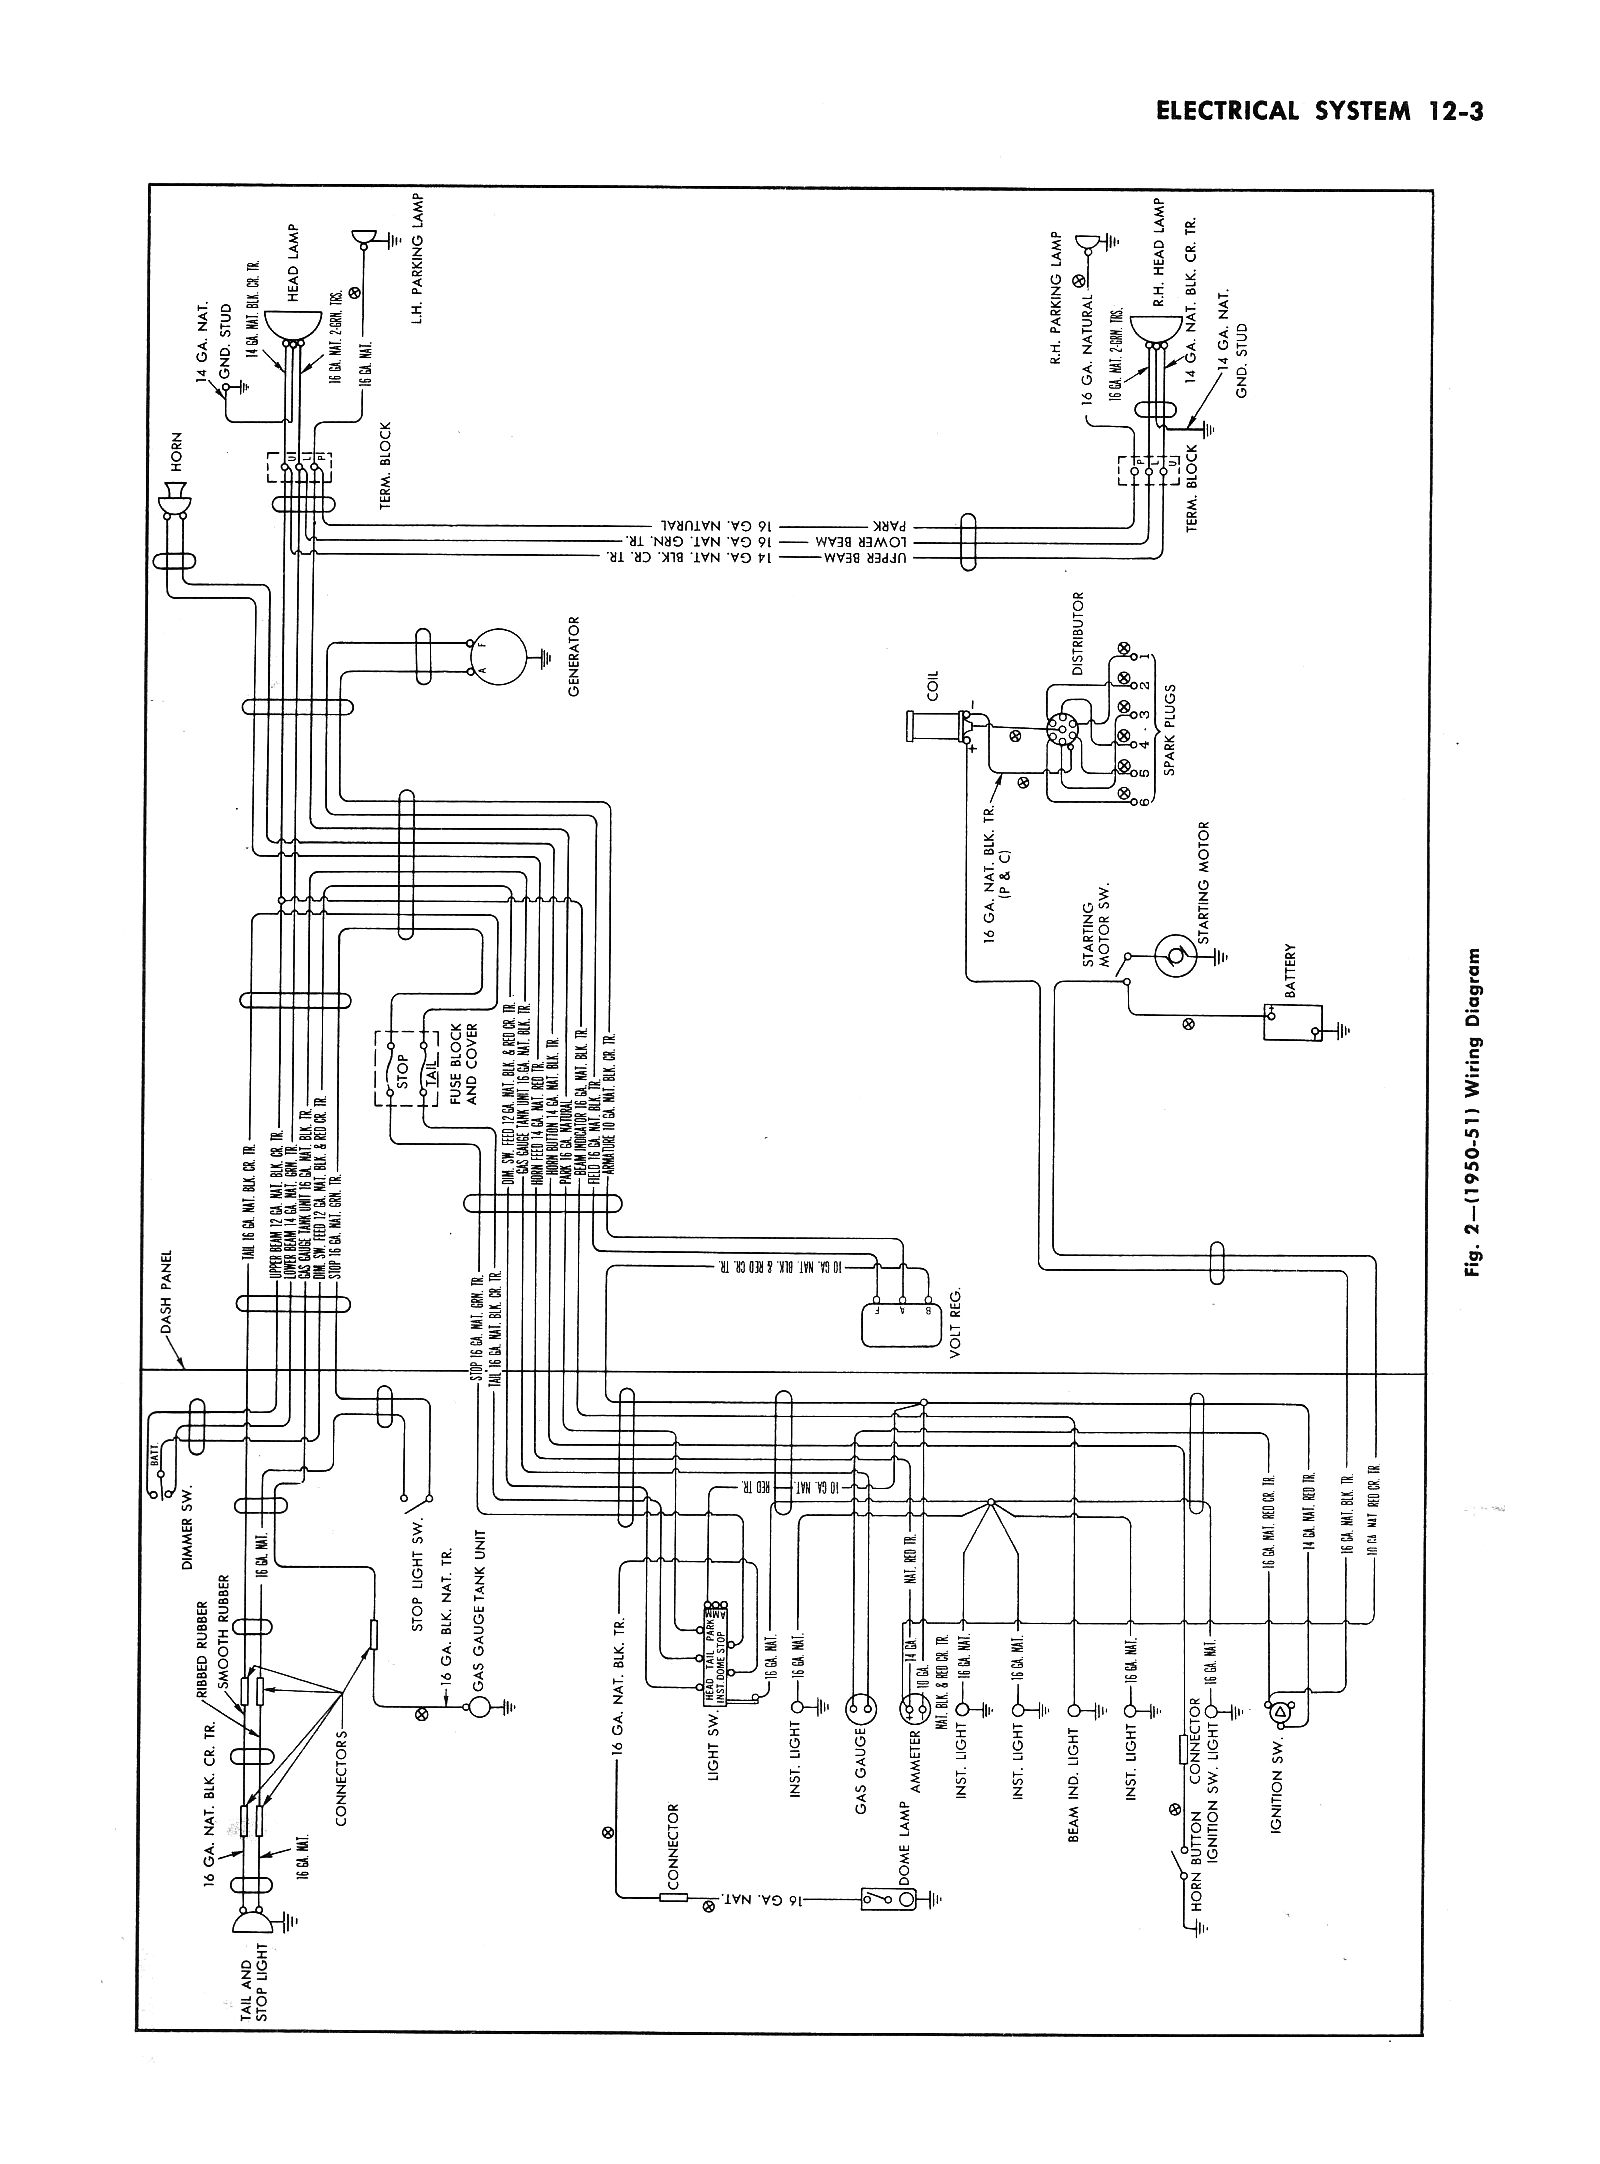 51ctsm1203 chevy wiring diagrams chevrolet wiring harness at mifinder.co